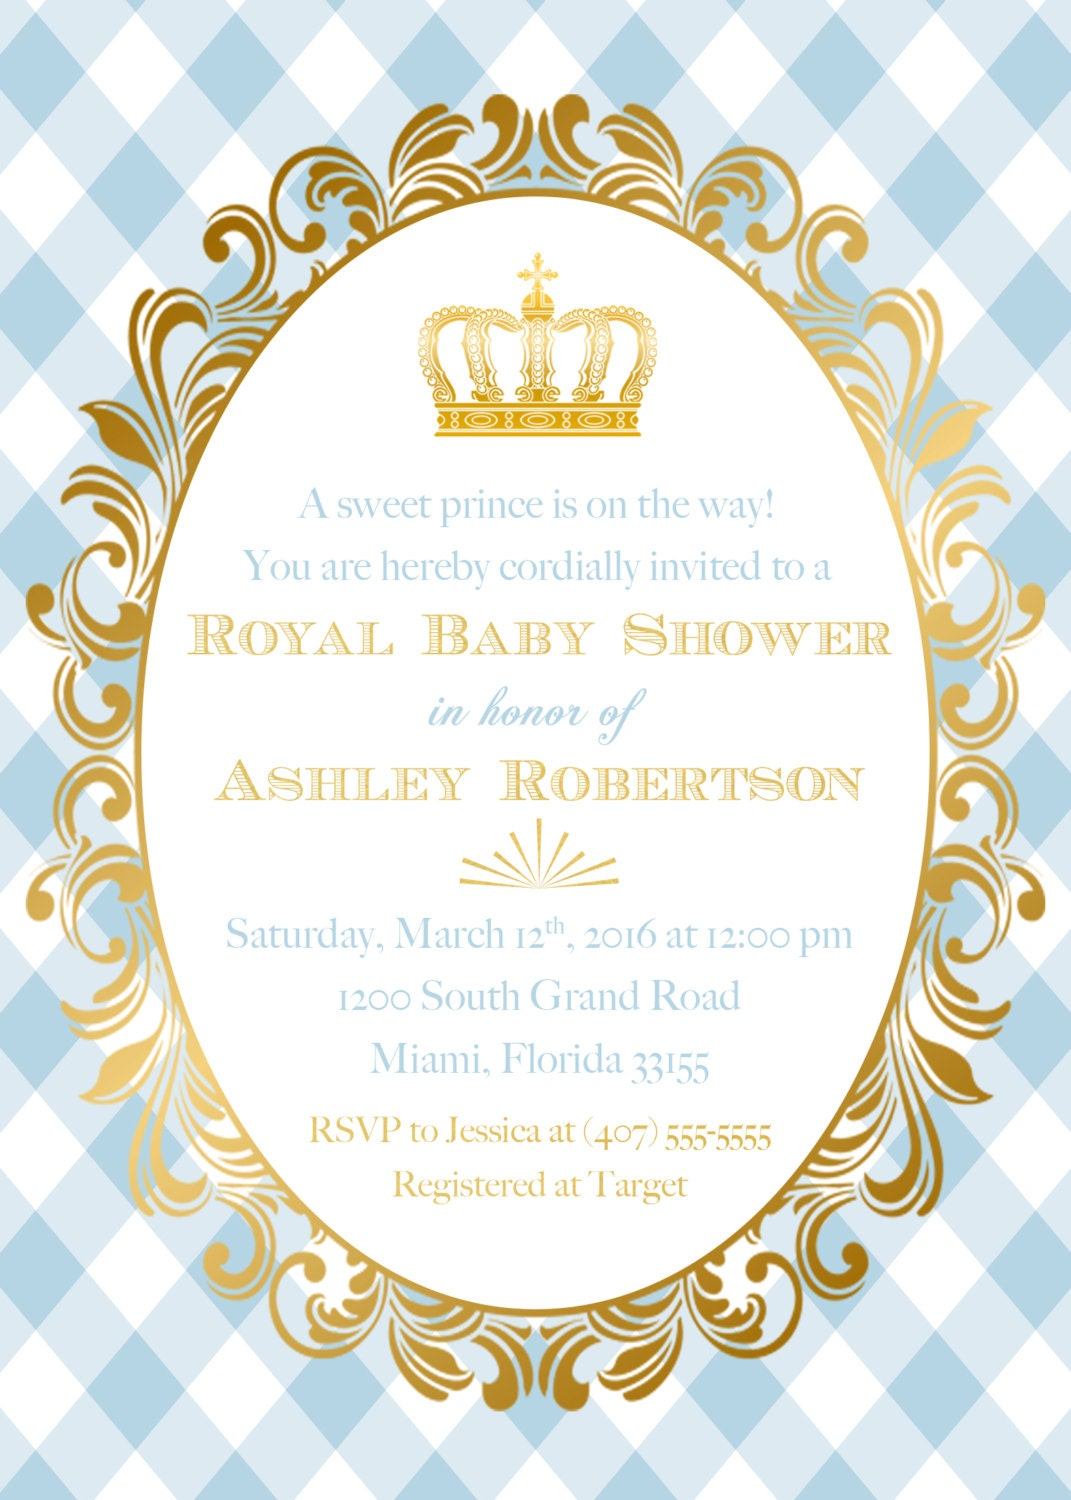 Prince Baby Shower Invitation, Royal Baby Shower, Gold Foil Crown ...